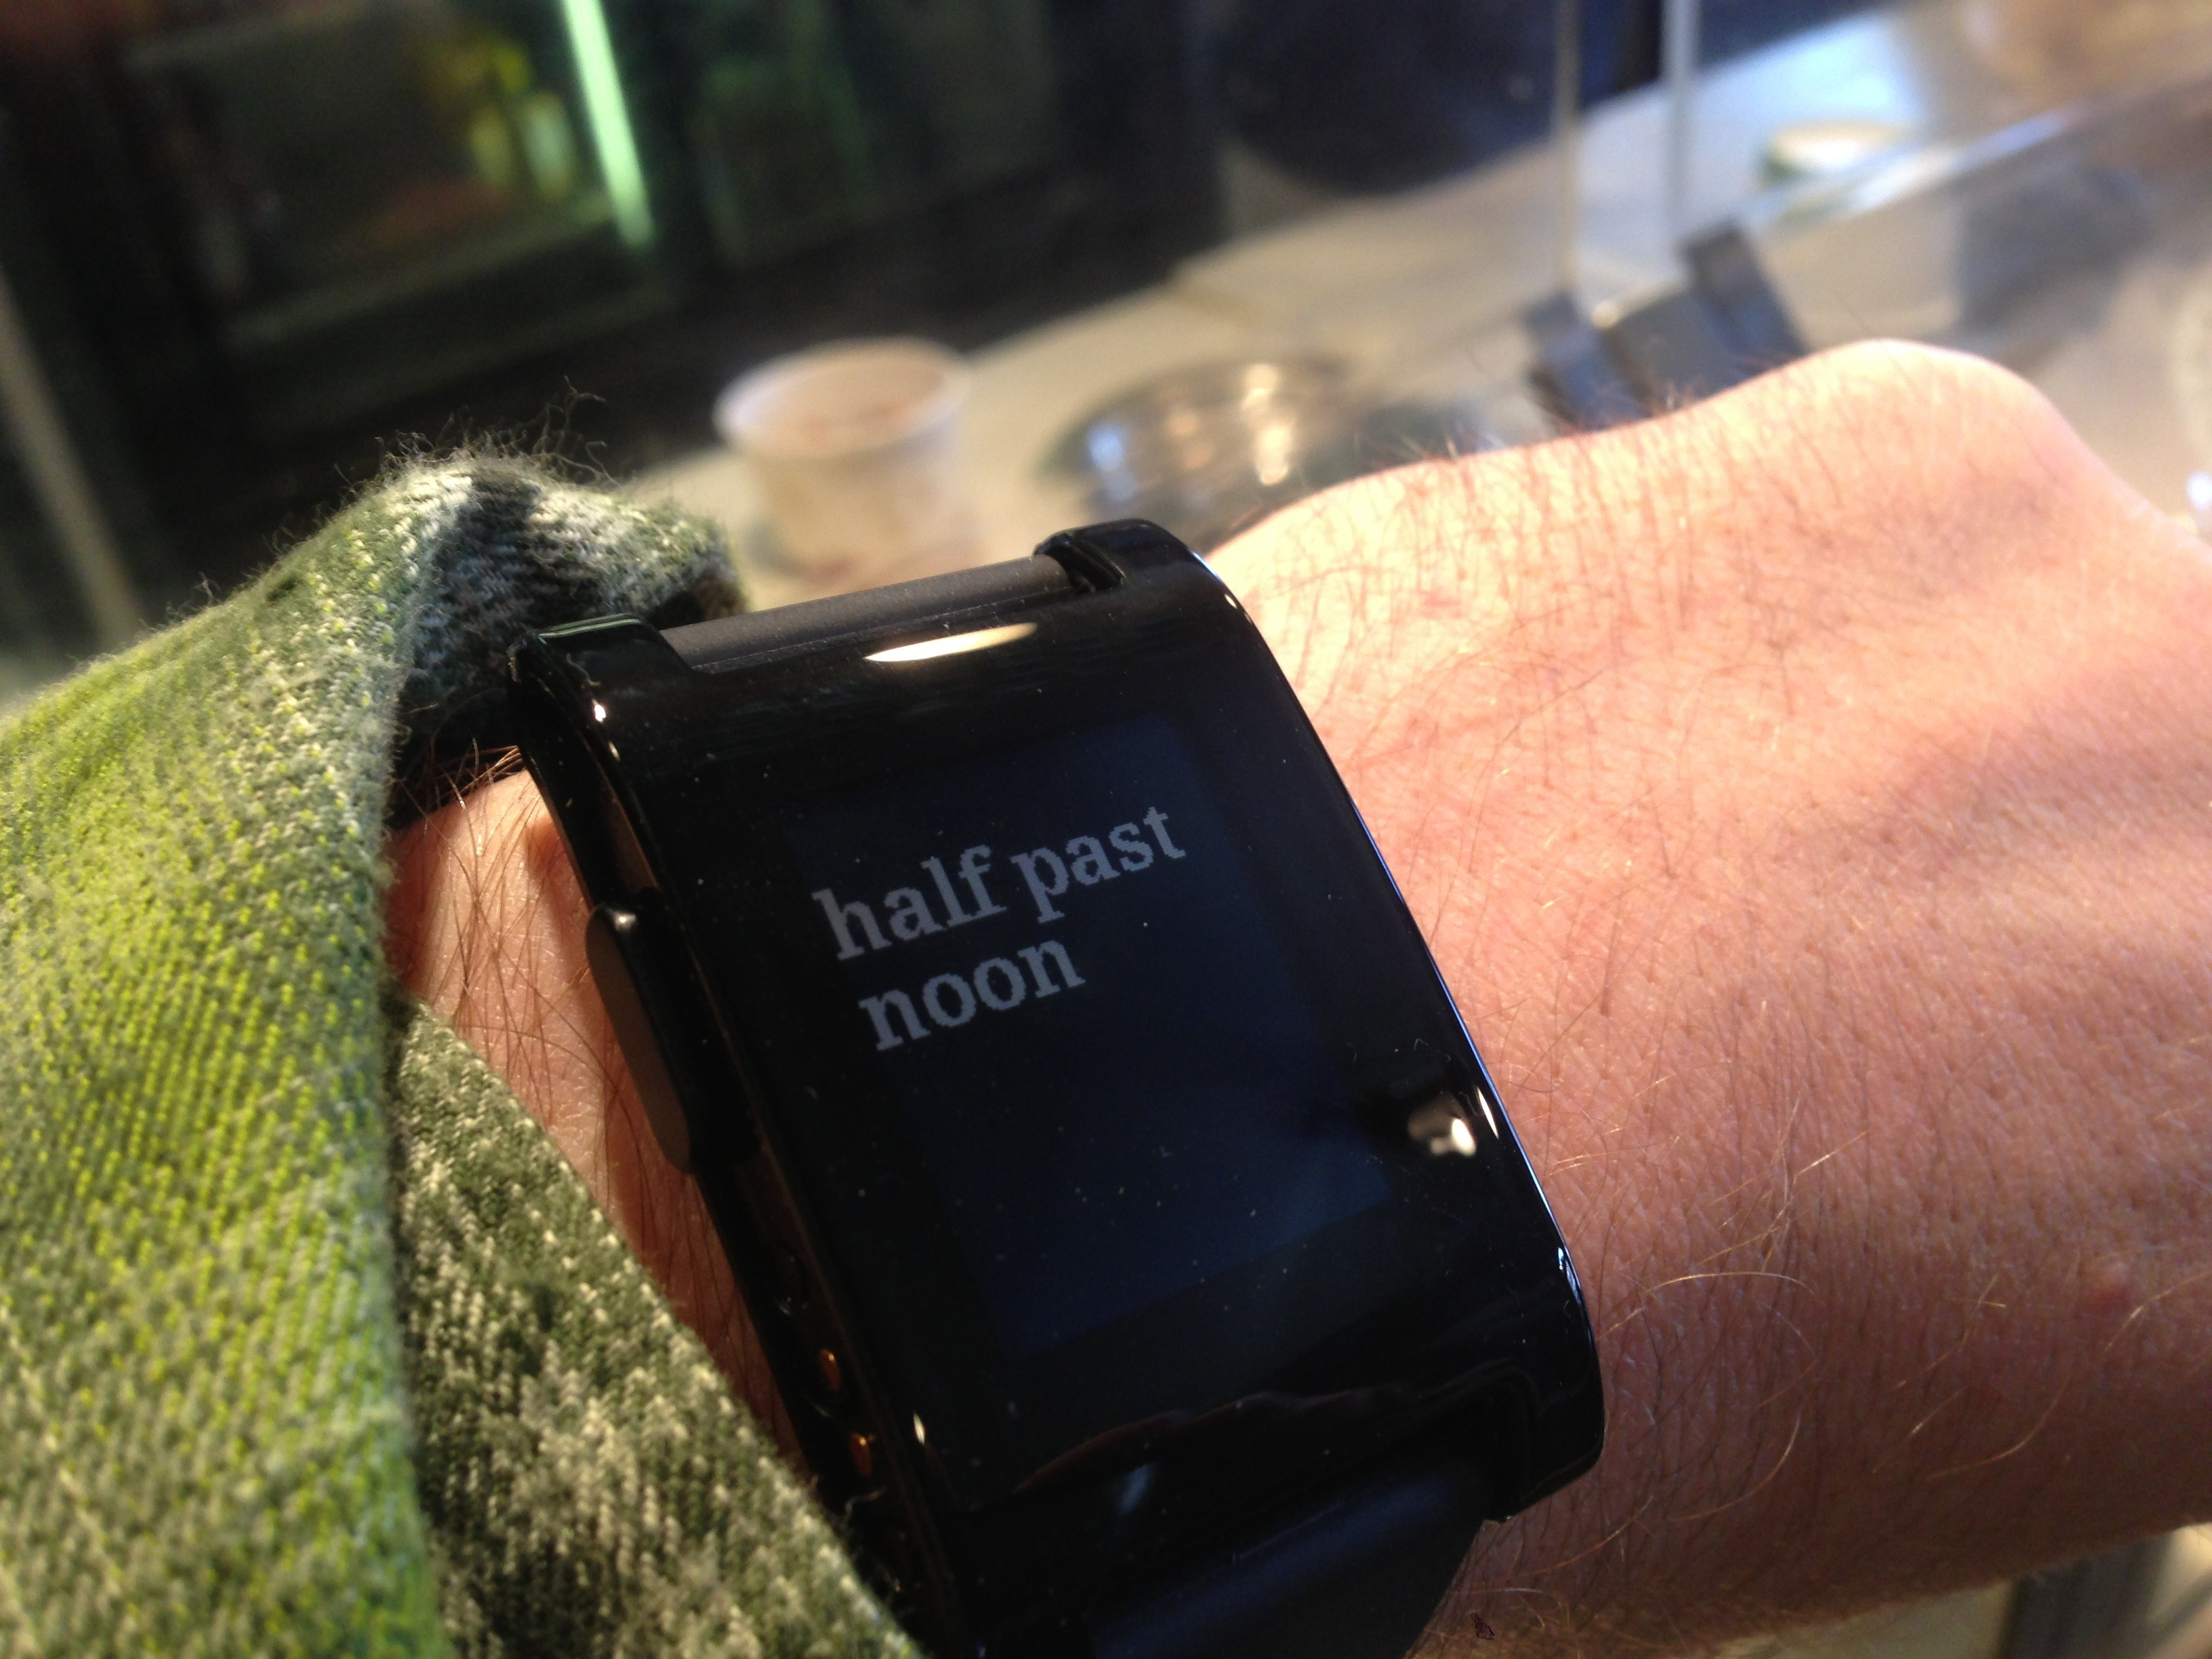 My Pebble Watch